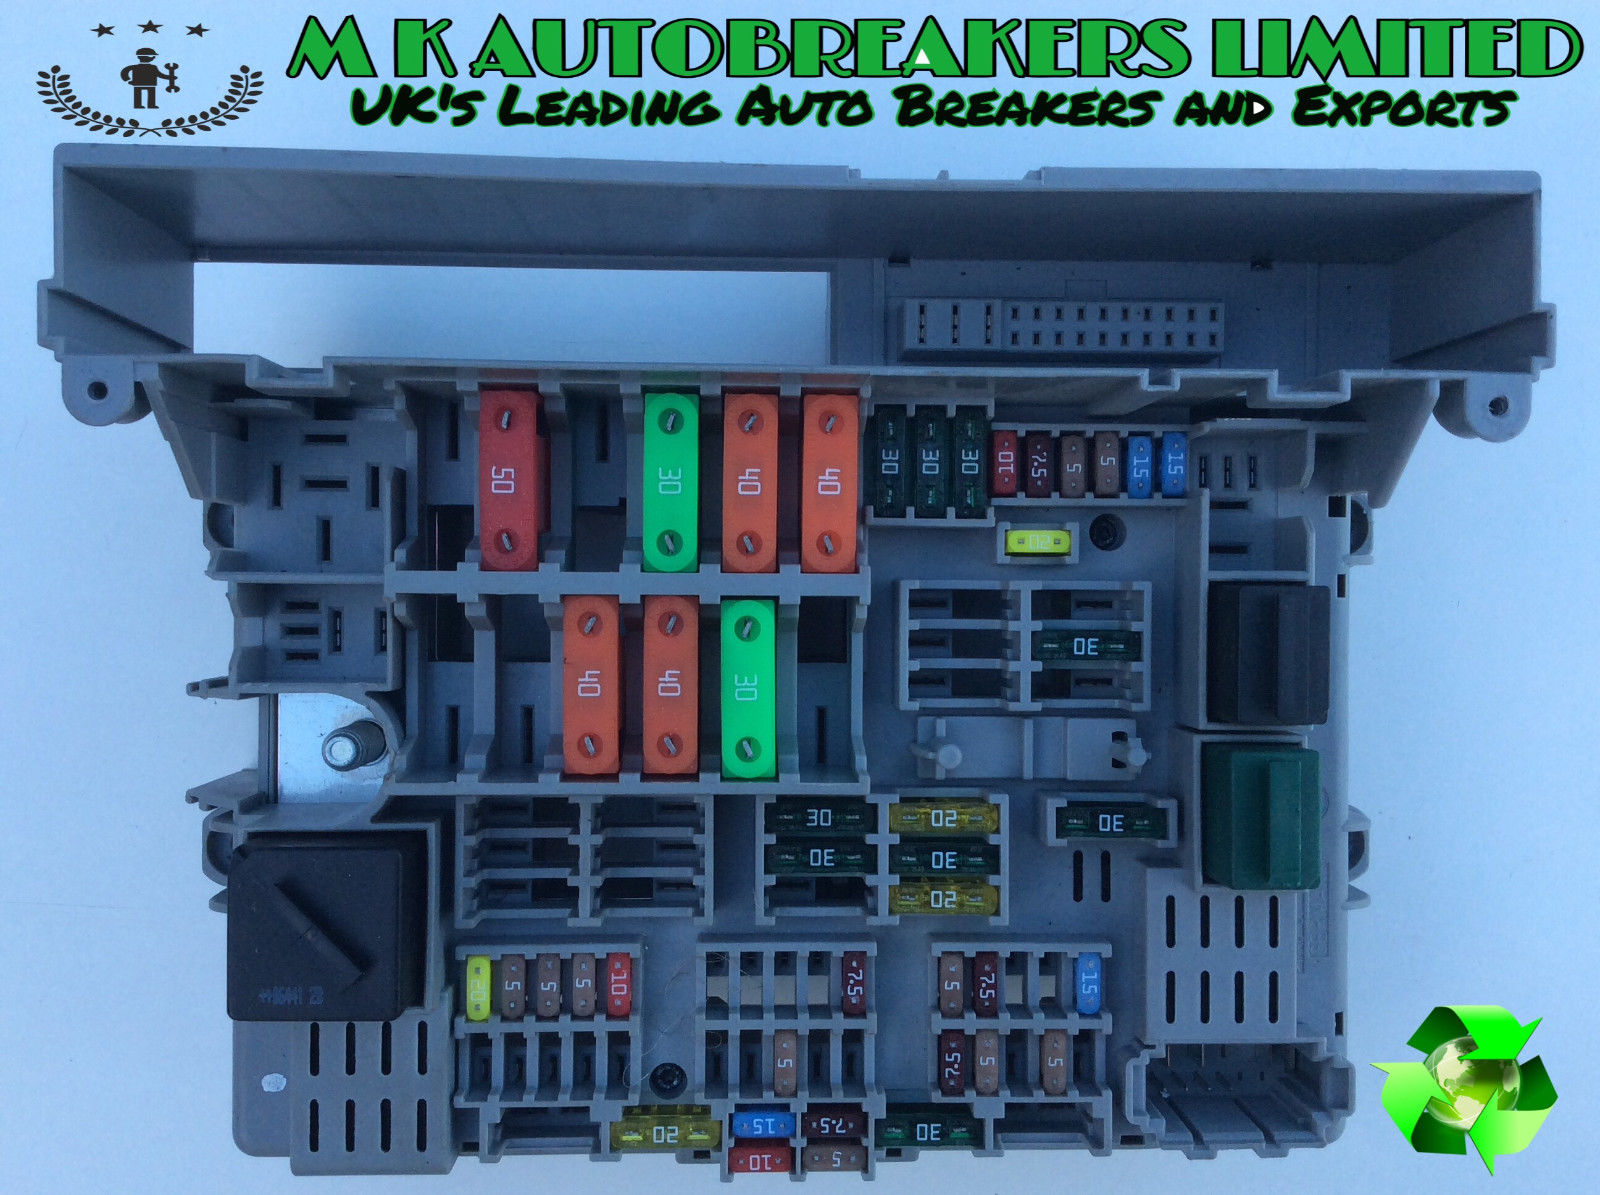 Bmw E92 Fuse Box Explained Wiring Diagrams 325i Horn Location E90 Spares Product U2022 2005 325xi